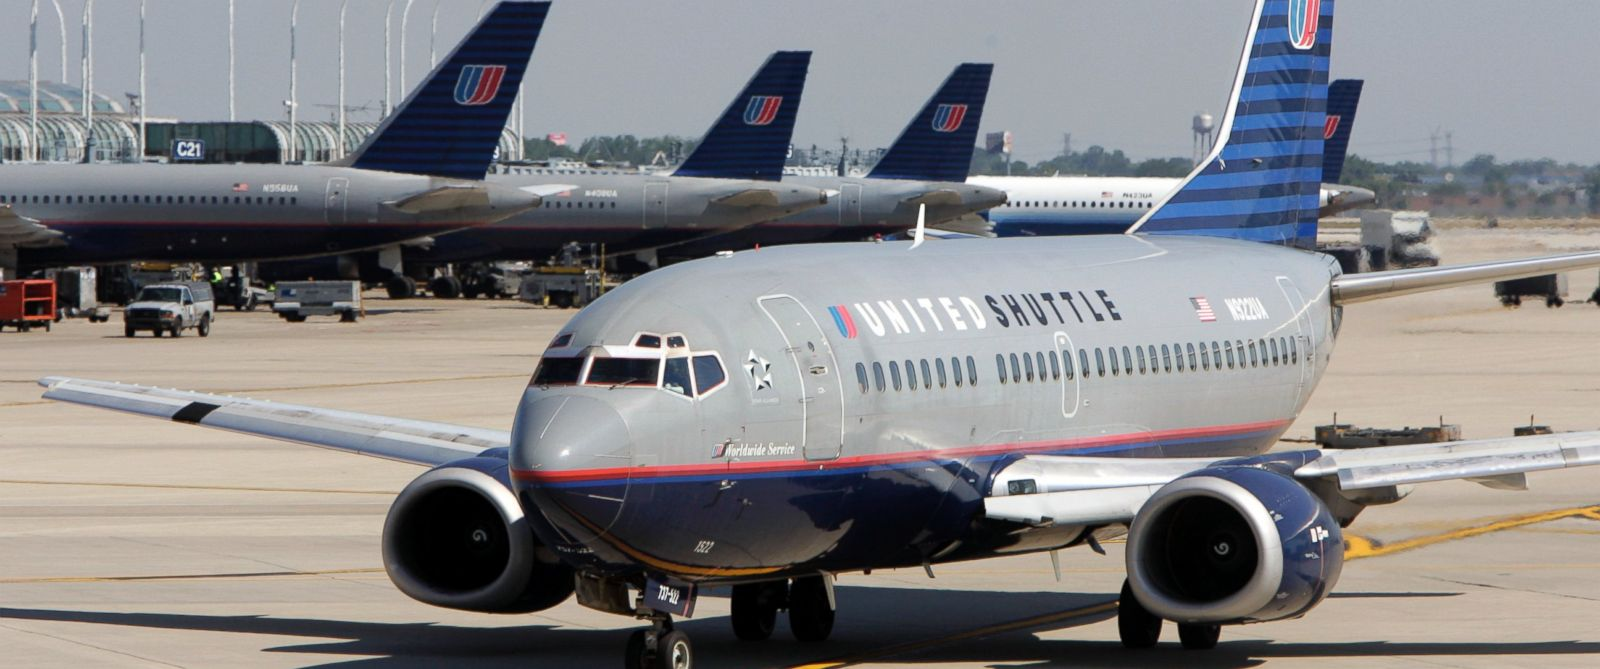 PHOTO: United Airlines planes are seen at Chicagos OHare International Airport.